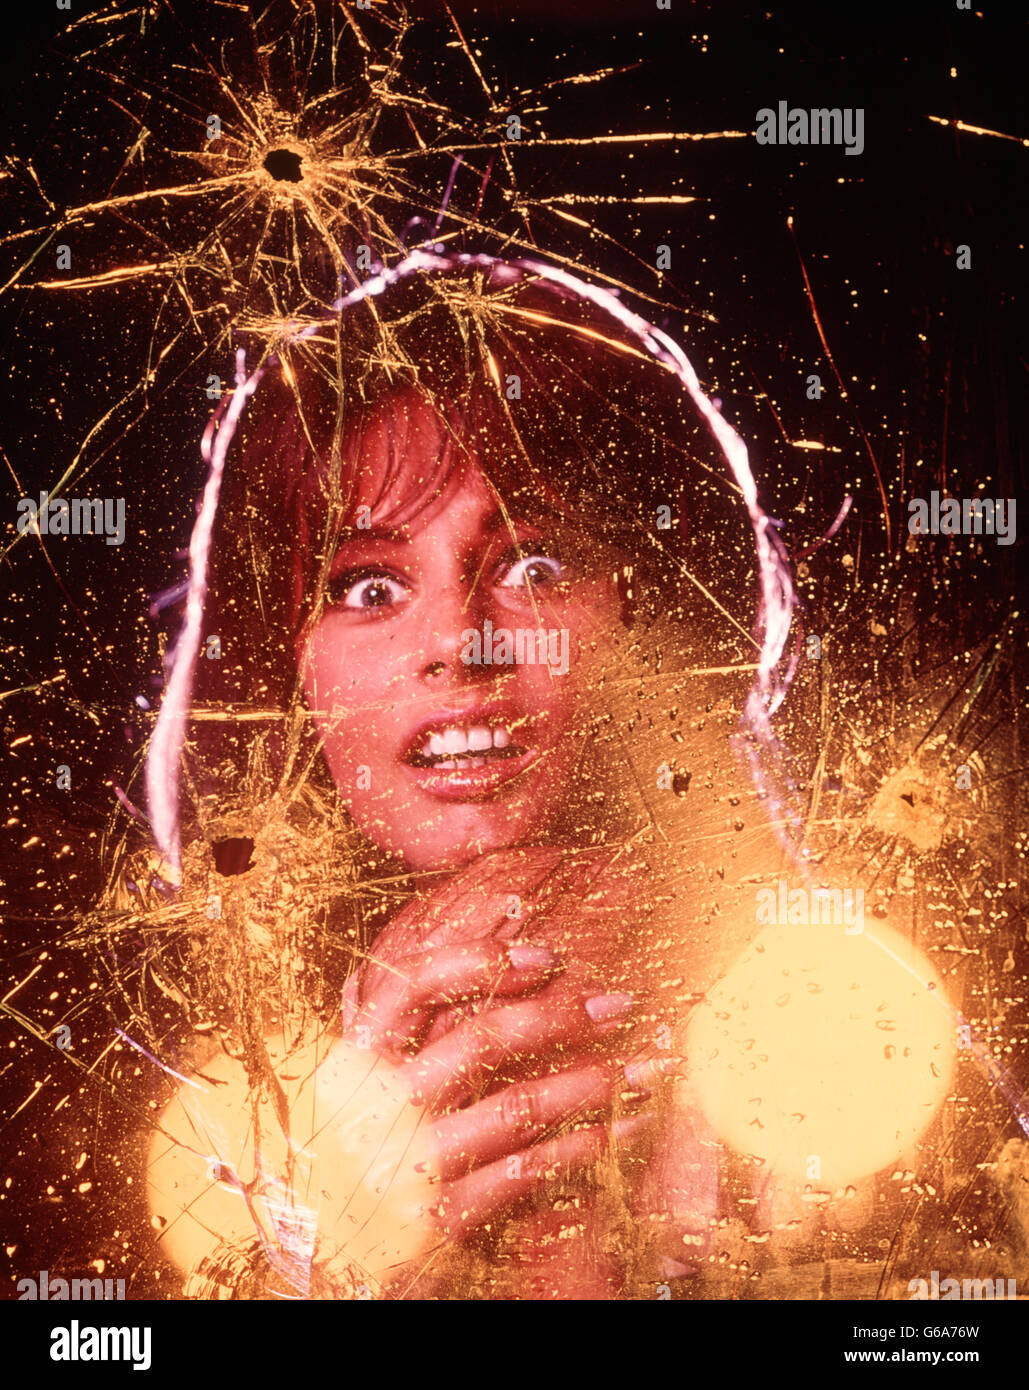 1970s WOMAN AFRAID LOOKING AT CAMERA FACIAL EXPRESSIONS FEAR TERROR FRIGHT YELLOW CAR HEADLIGHTS SHATTERED GLASS - Stock Image